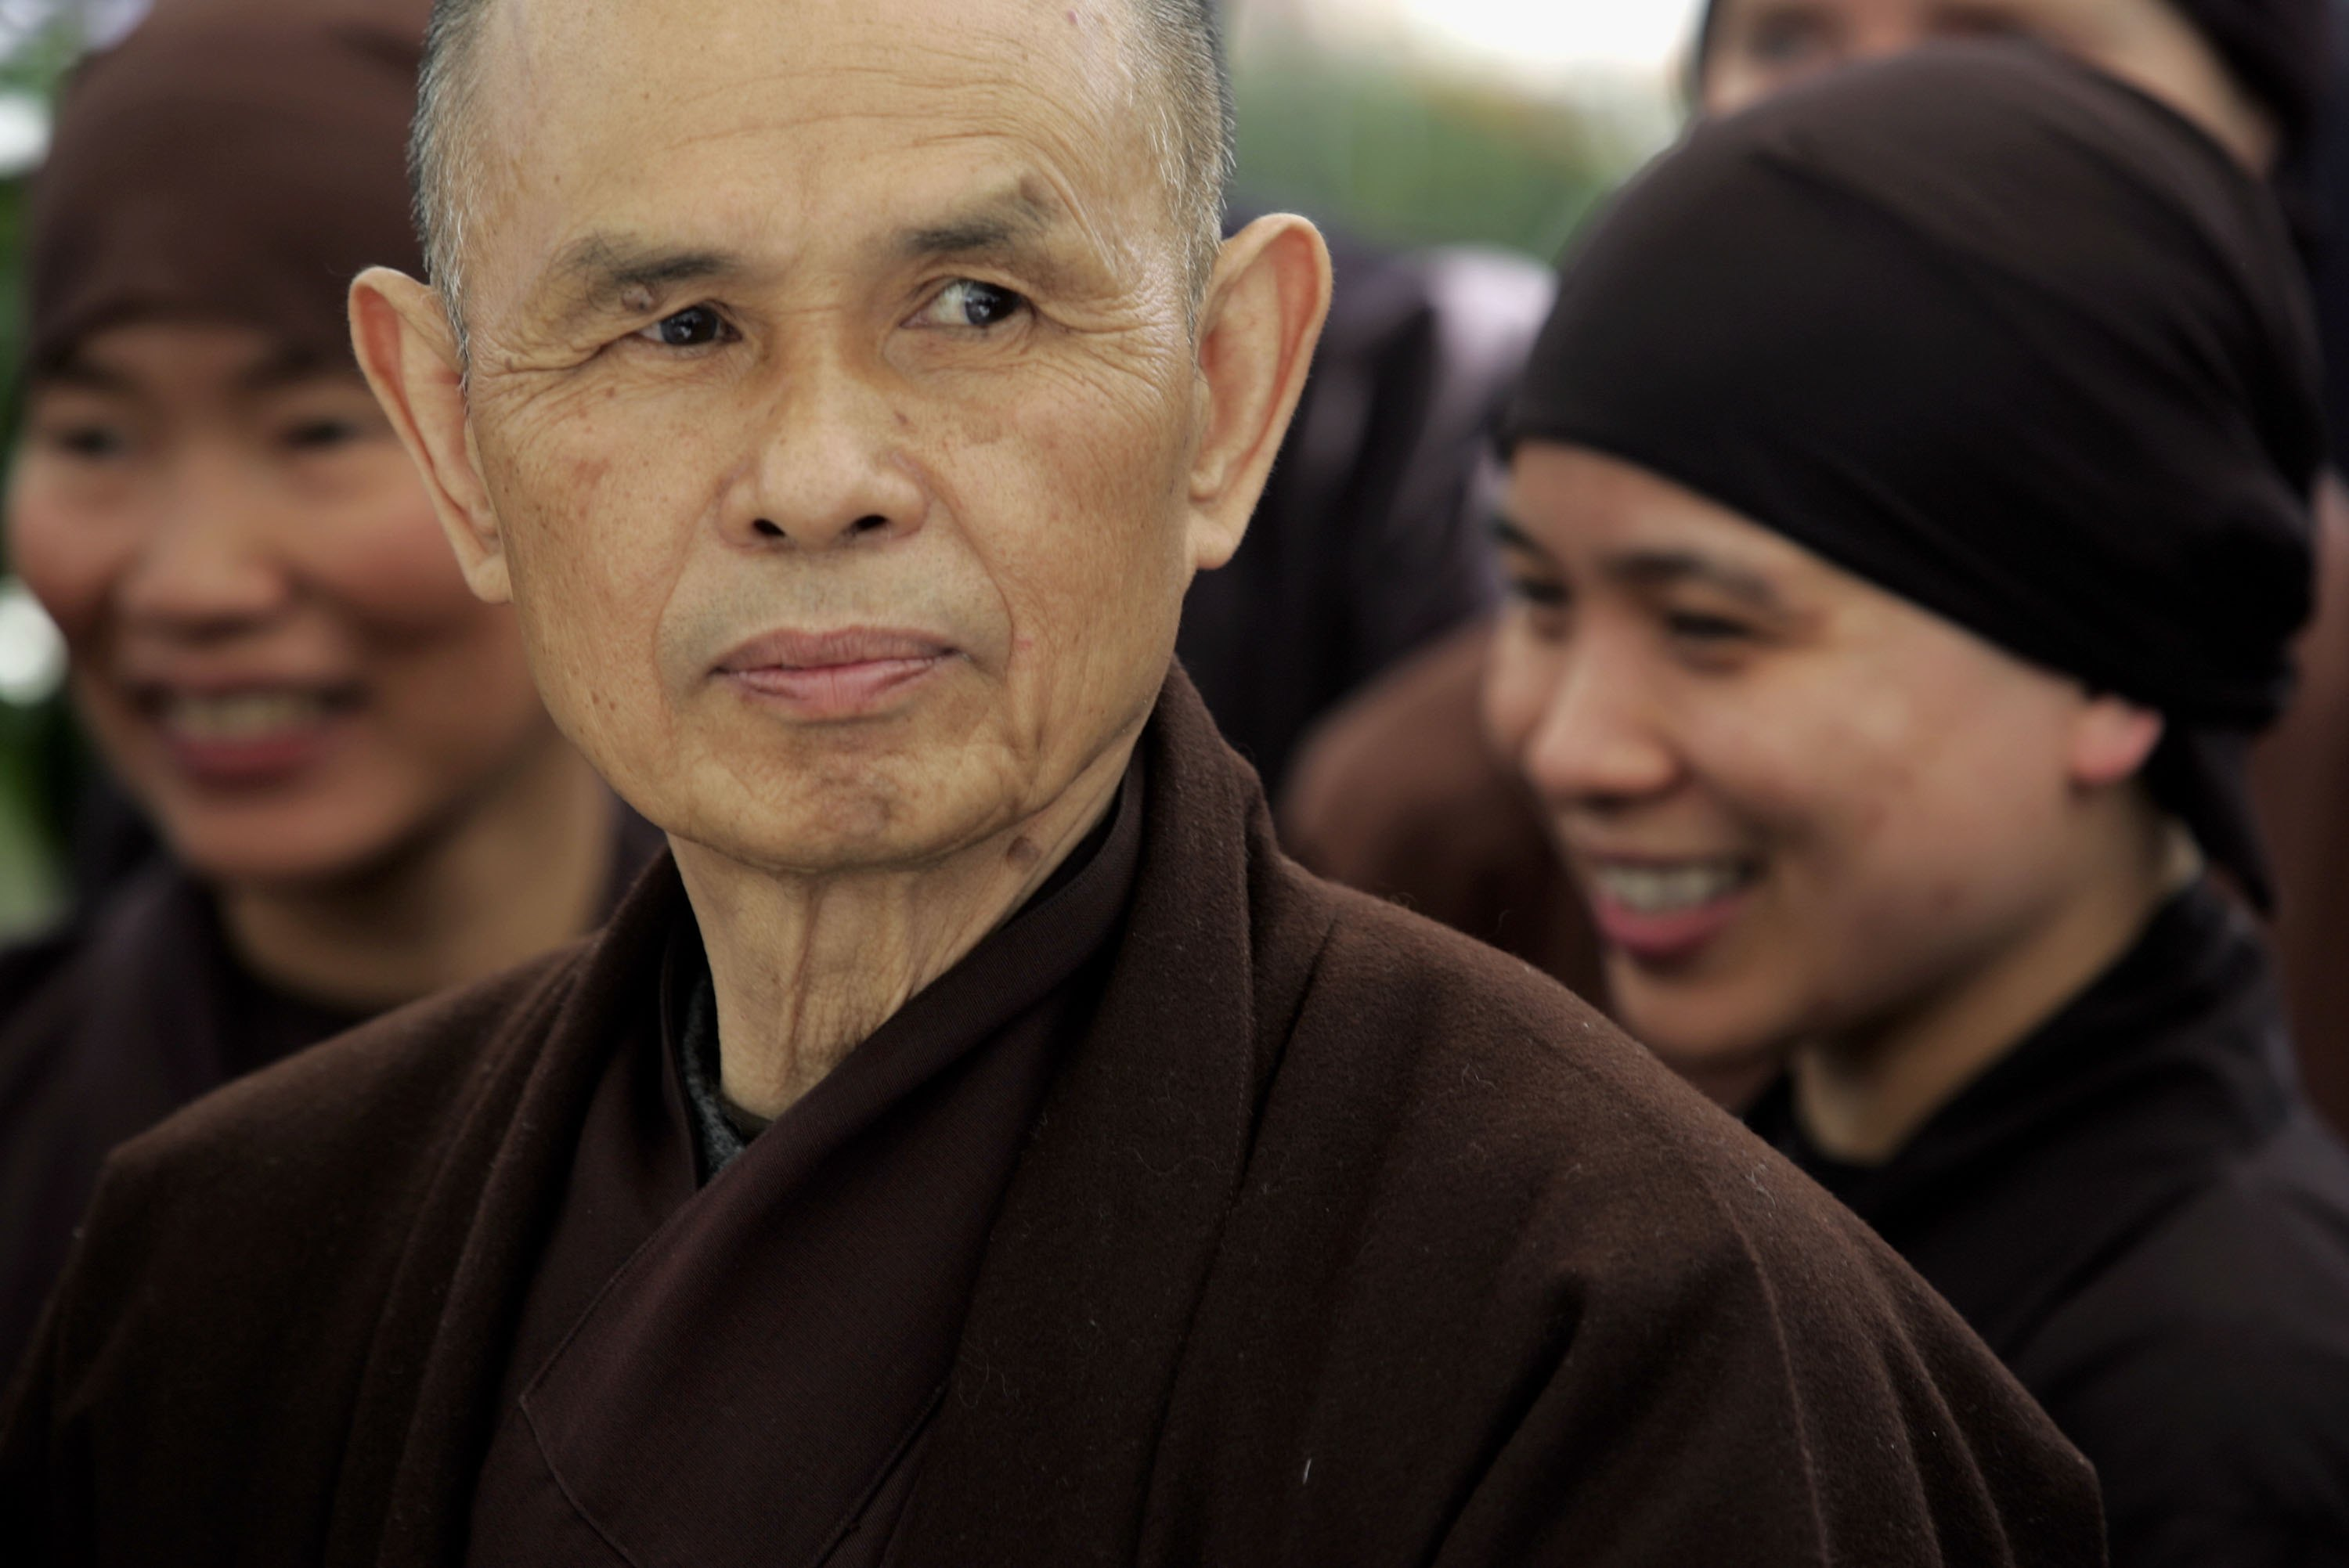 Thich Nhat Hanh, Cheri Maples, and Larry Ward — Being Peace in a World of Trauma